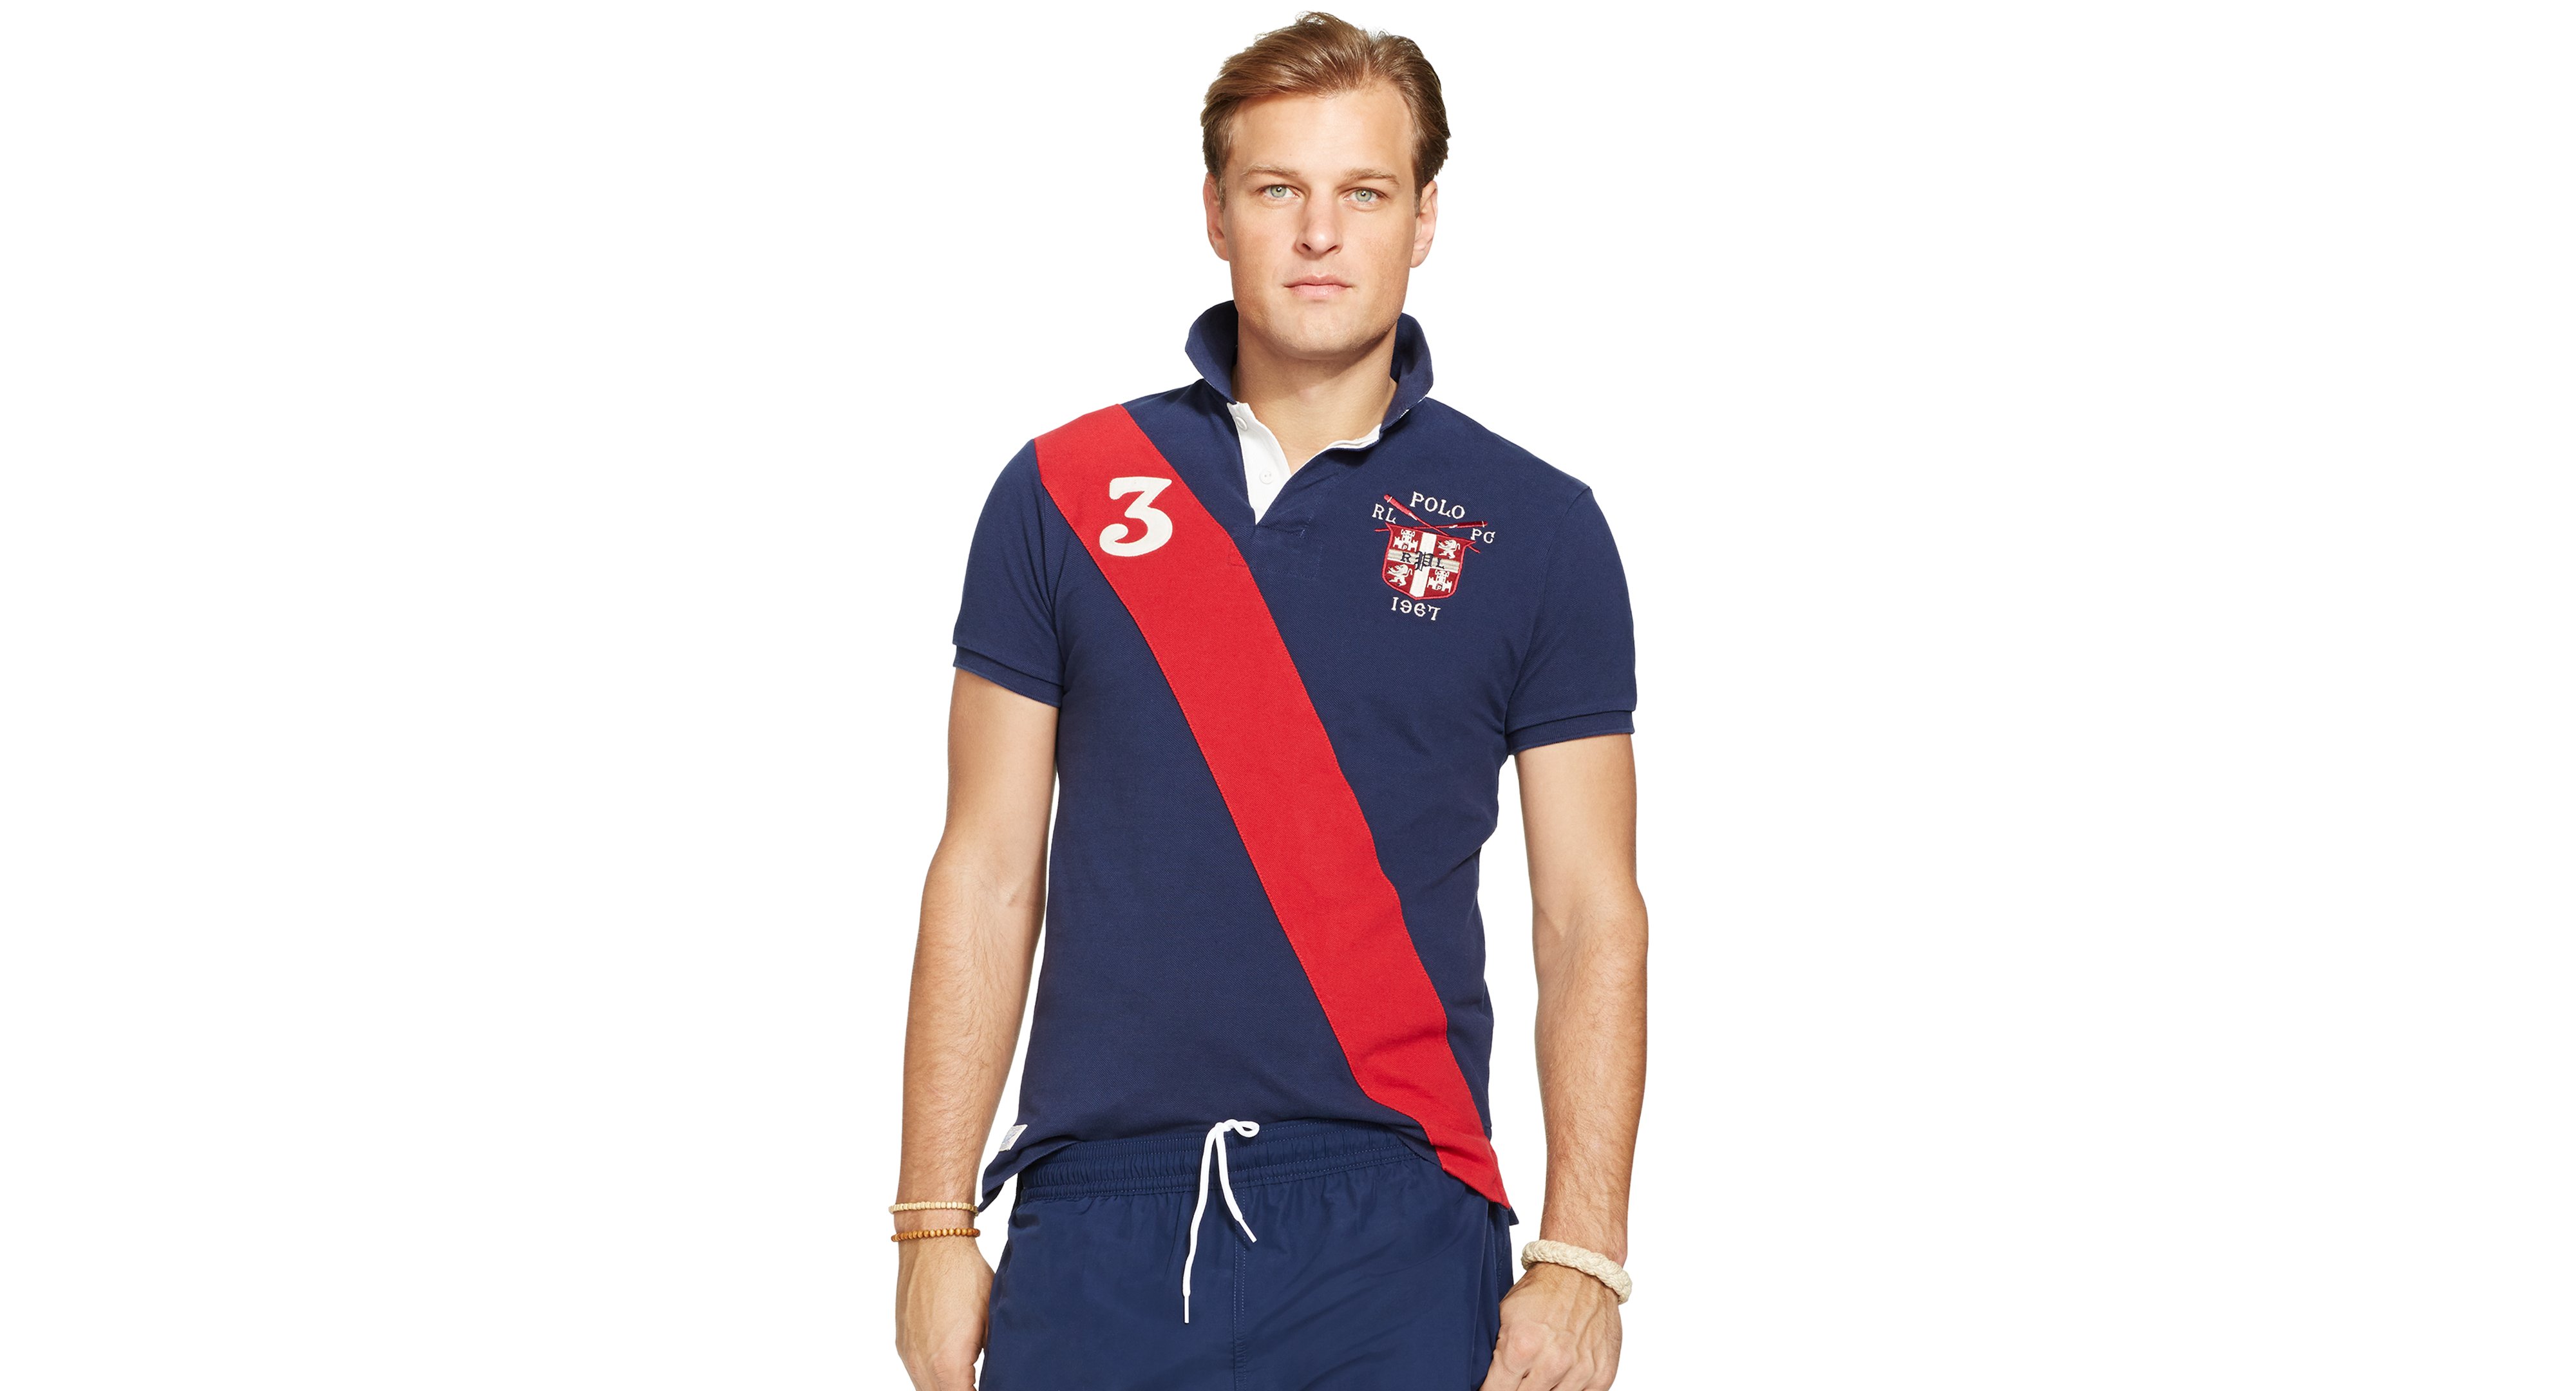 689f1643ded Polo Ralph Lauren Big and Tall Factory Store Tanger Outlets .